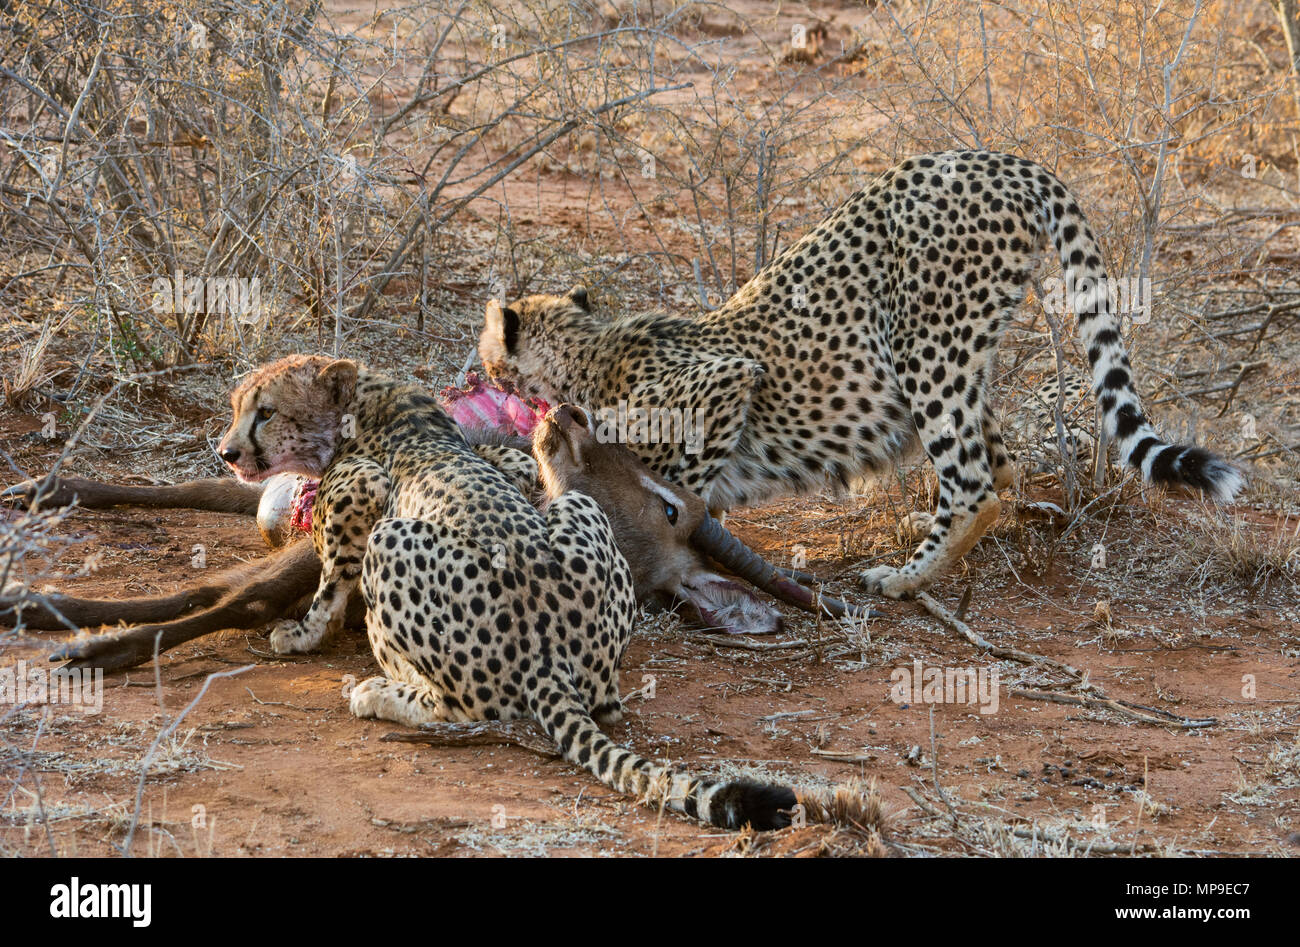 Two cheetahs sharing their kill of a waterbuffalo in Madikwe South Africa - Stock Image